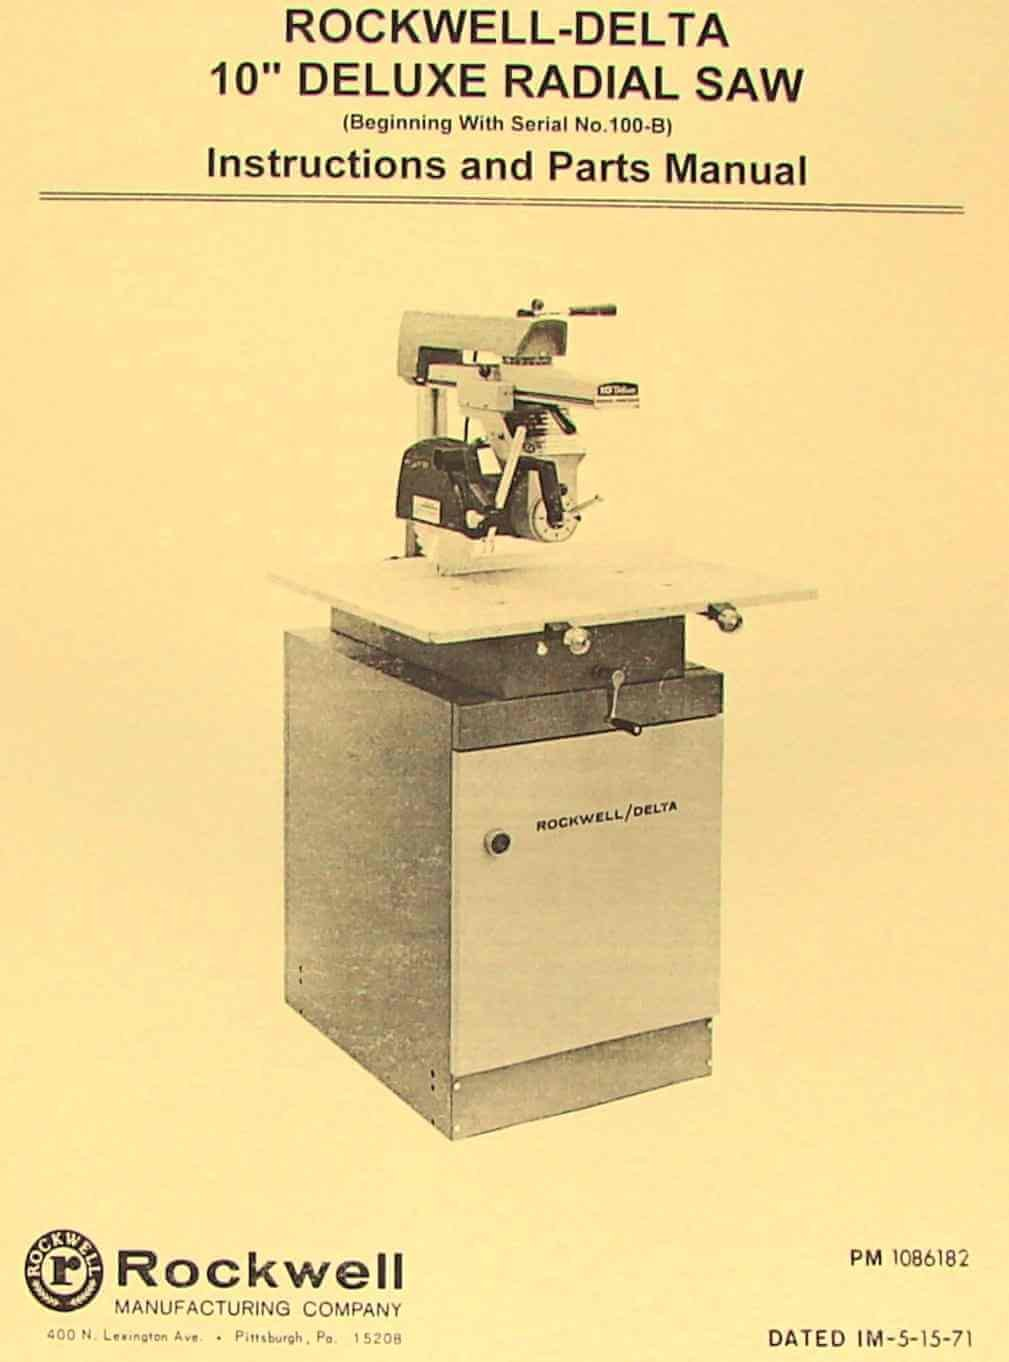 Delta 33-990 Model 10 Deluxe Radial Arm Saw Instructions Manual